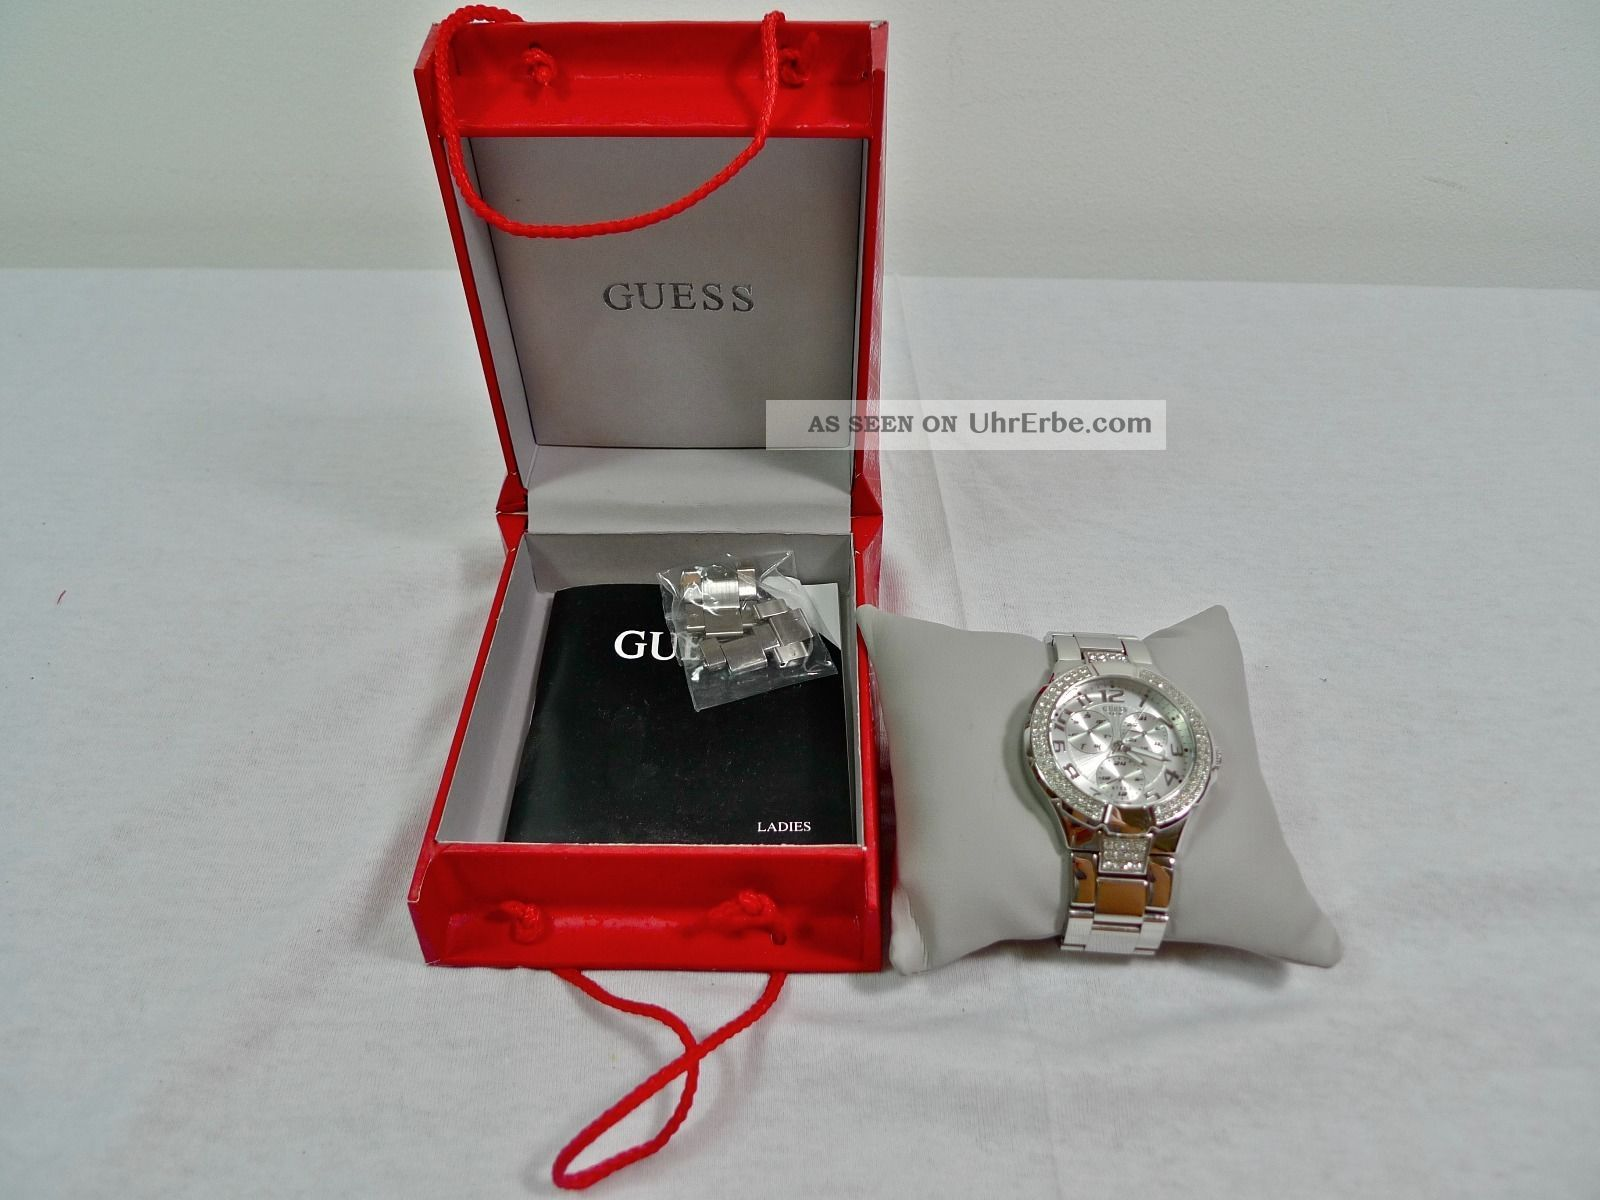 Guess Prism Ladies Stainless Steel Chronograph Uhr I14503l1 Watch Armbanduhr Armbanduhren Bild